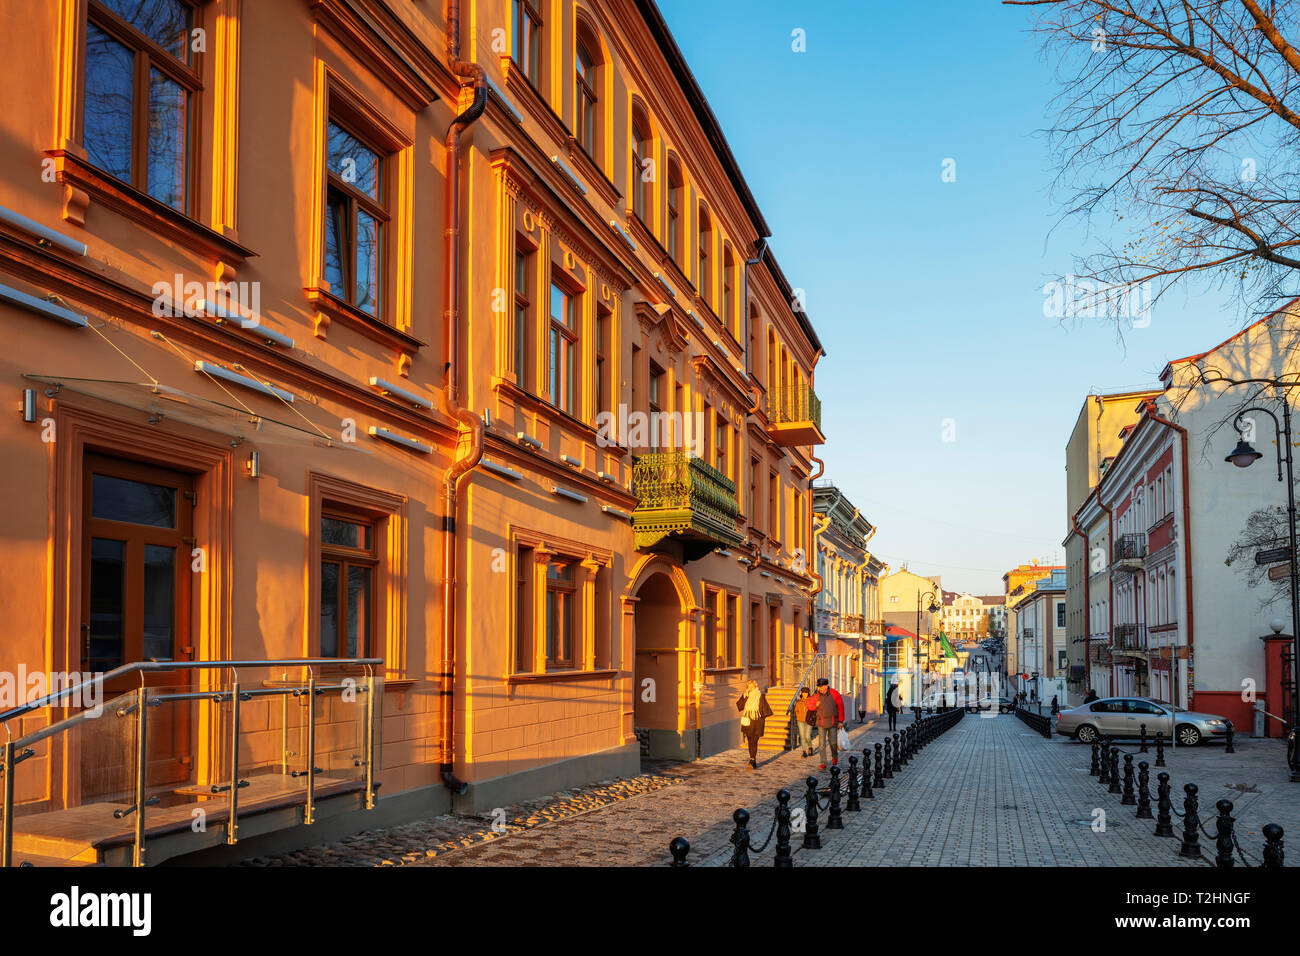 Old town houses in the Trinity Suburb, Minsk, Belarus, Eastern Europe - Stock Image